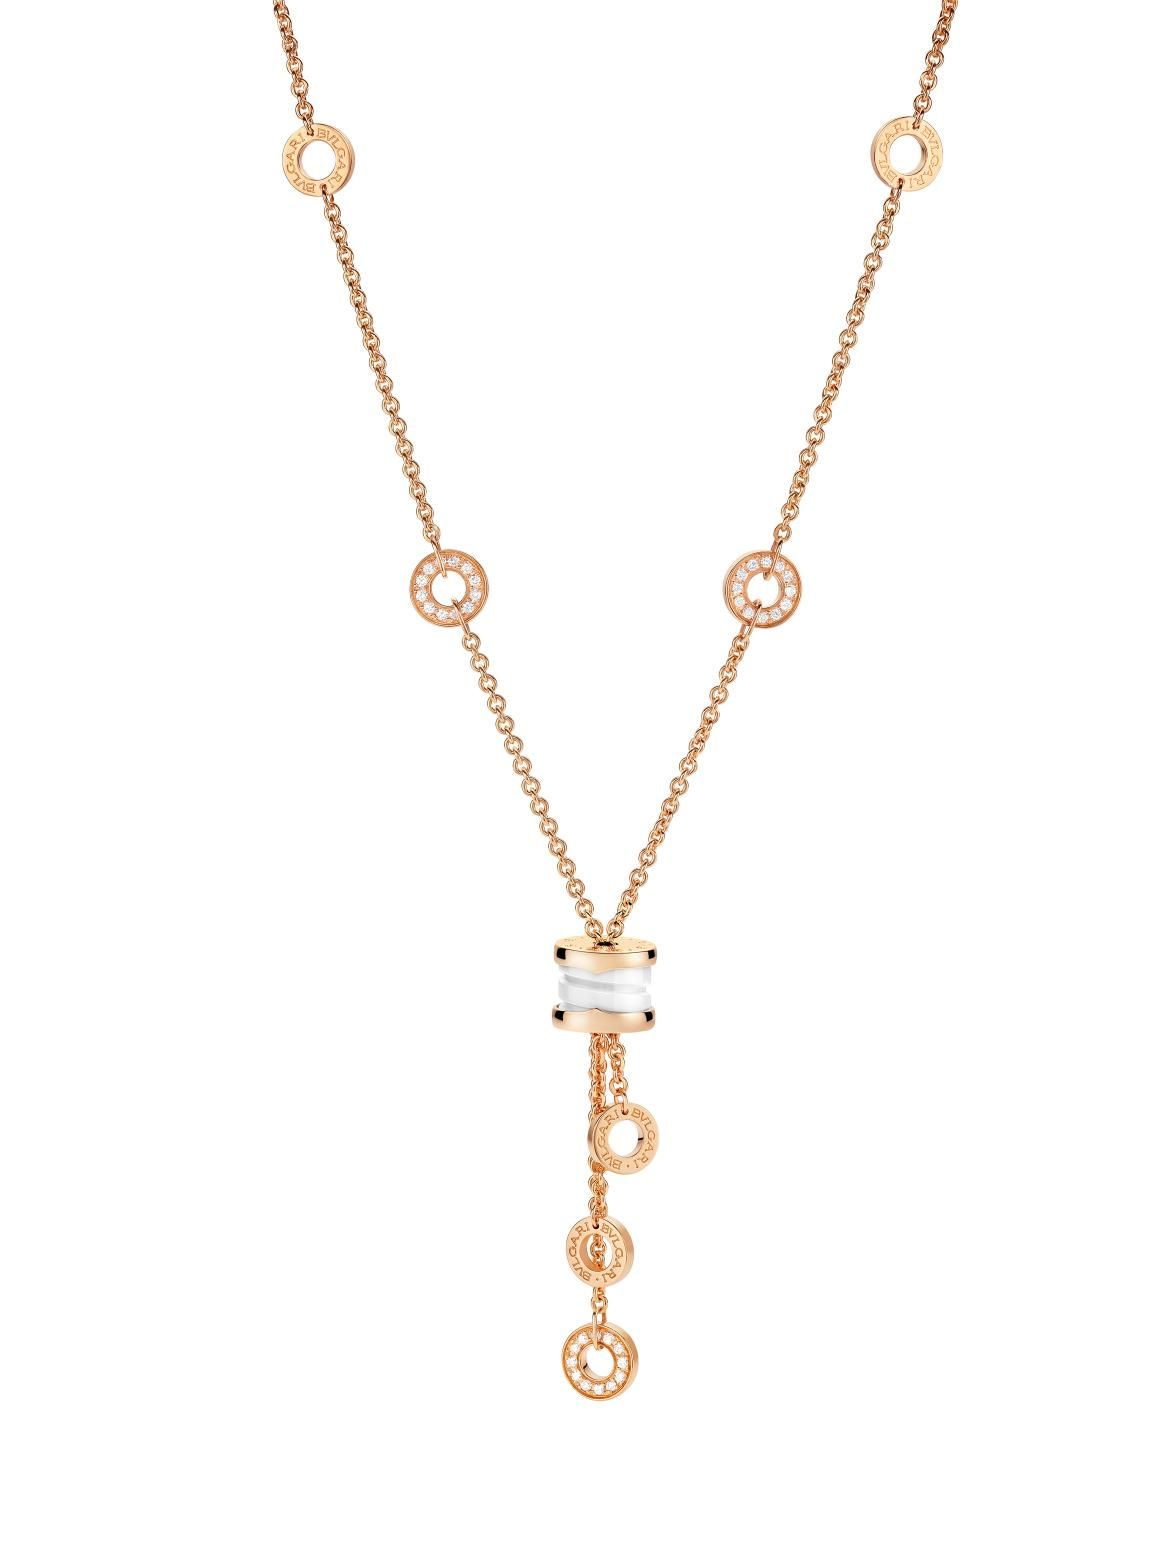 d59f06452 Bvlgari 18K Pink Gold B.zero1 White Ceramic and Diamond Necklace. Pink Gold  Chain with Alternating Gold Circles and a White Ceramic and Chain Drop.